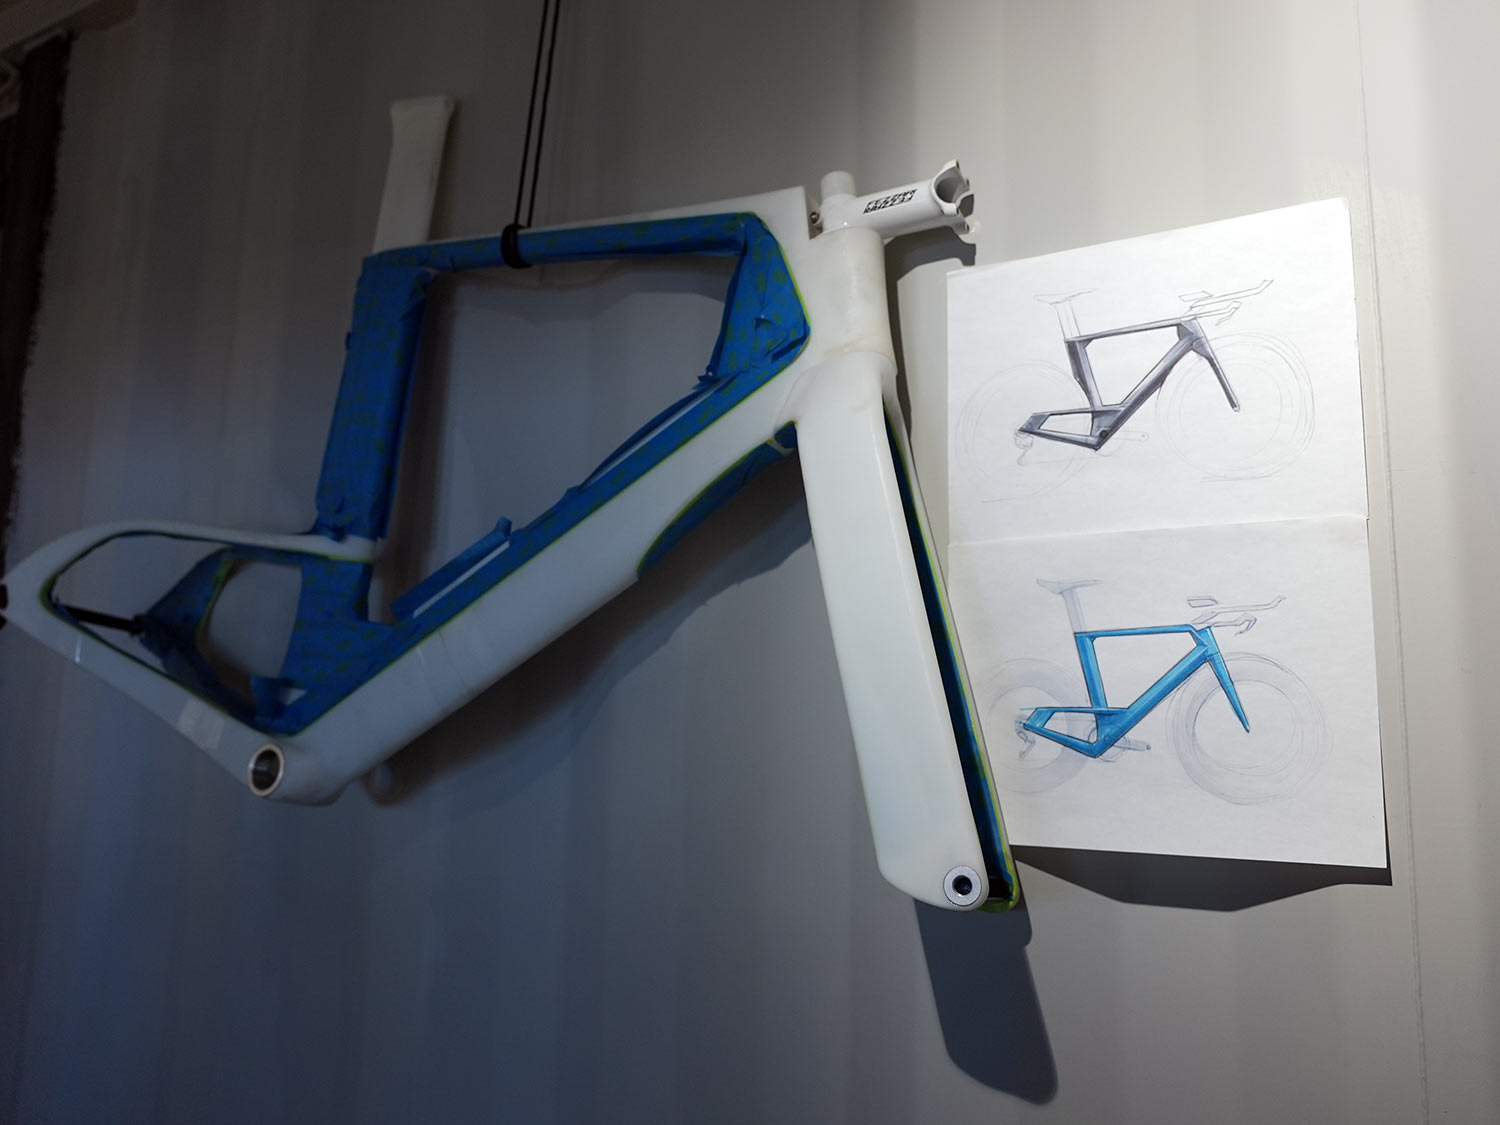 fezzari headquarters tour of 3d printed bicycle frames